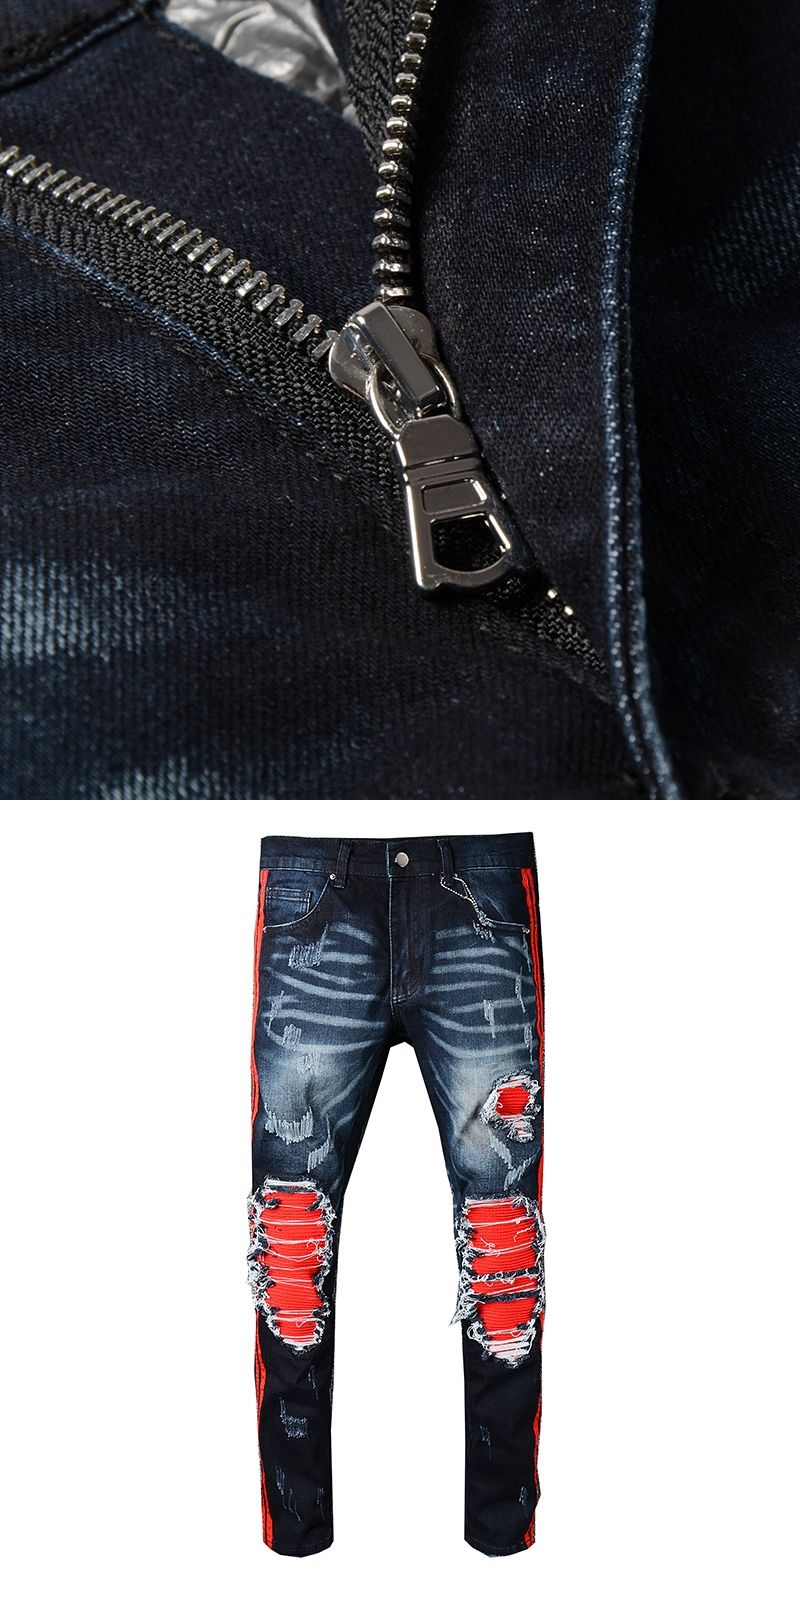 New arrive 2018 Men s Distressed Destroyed Pants Ribbed Black Mix Red Side  Stripe Slim Black Jeans Trousers Size 28-42 9ffef5f4fdcc